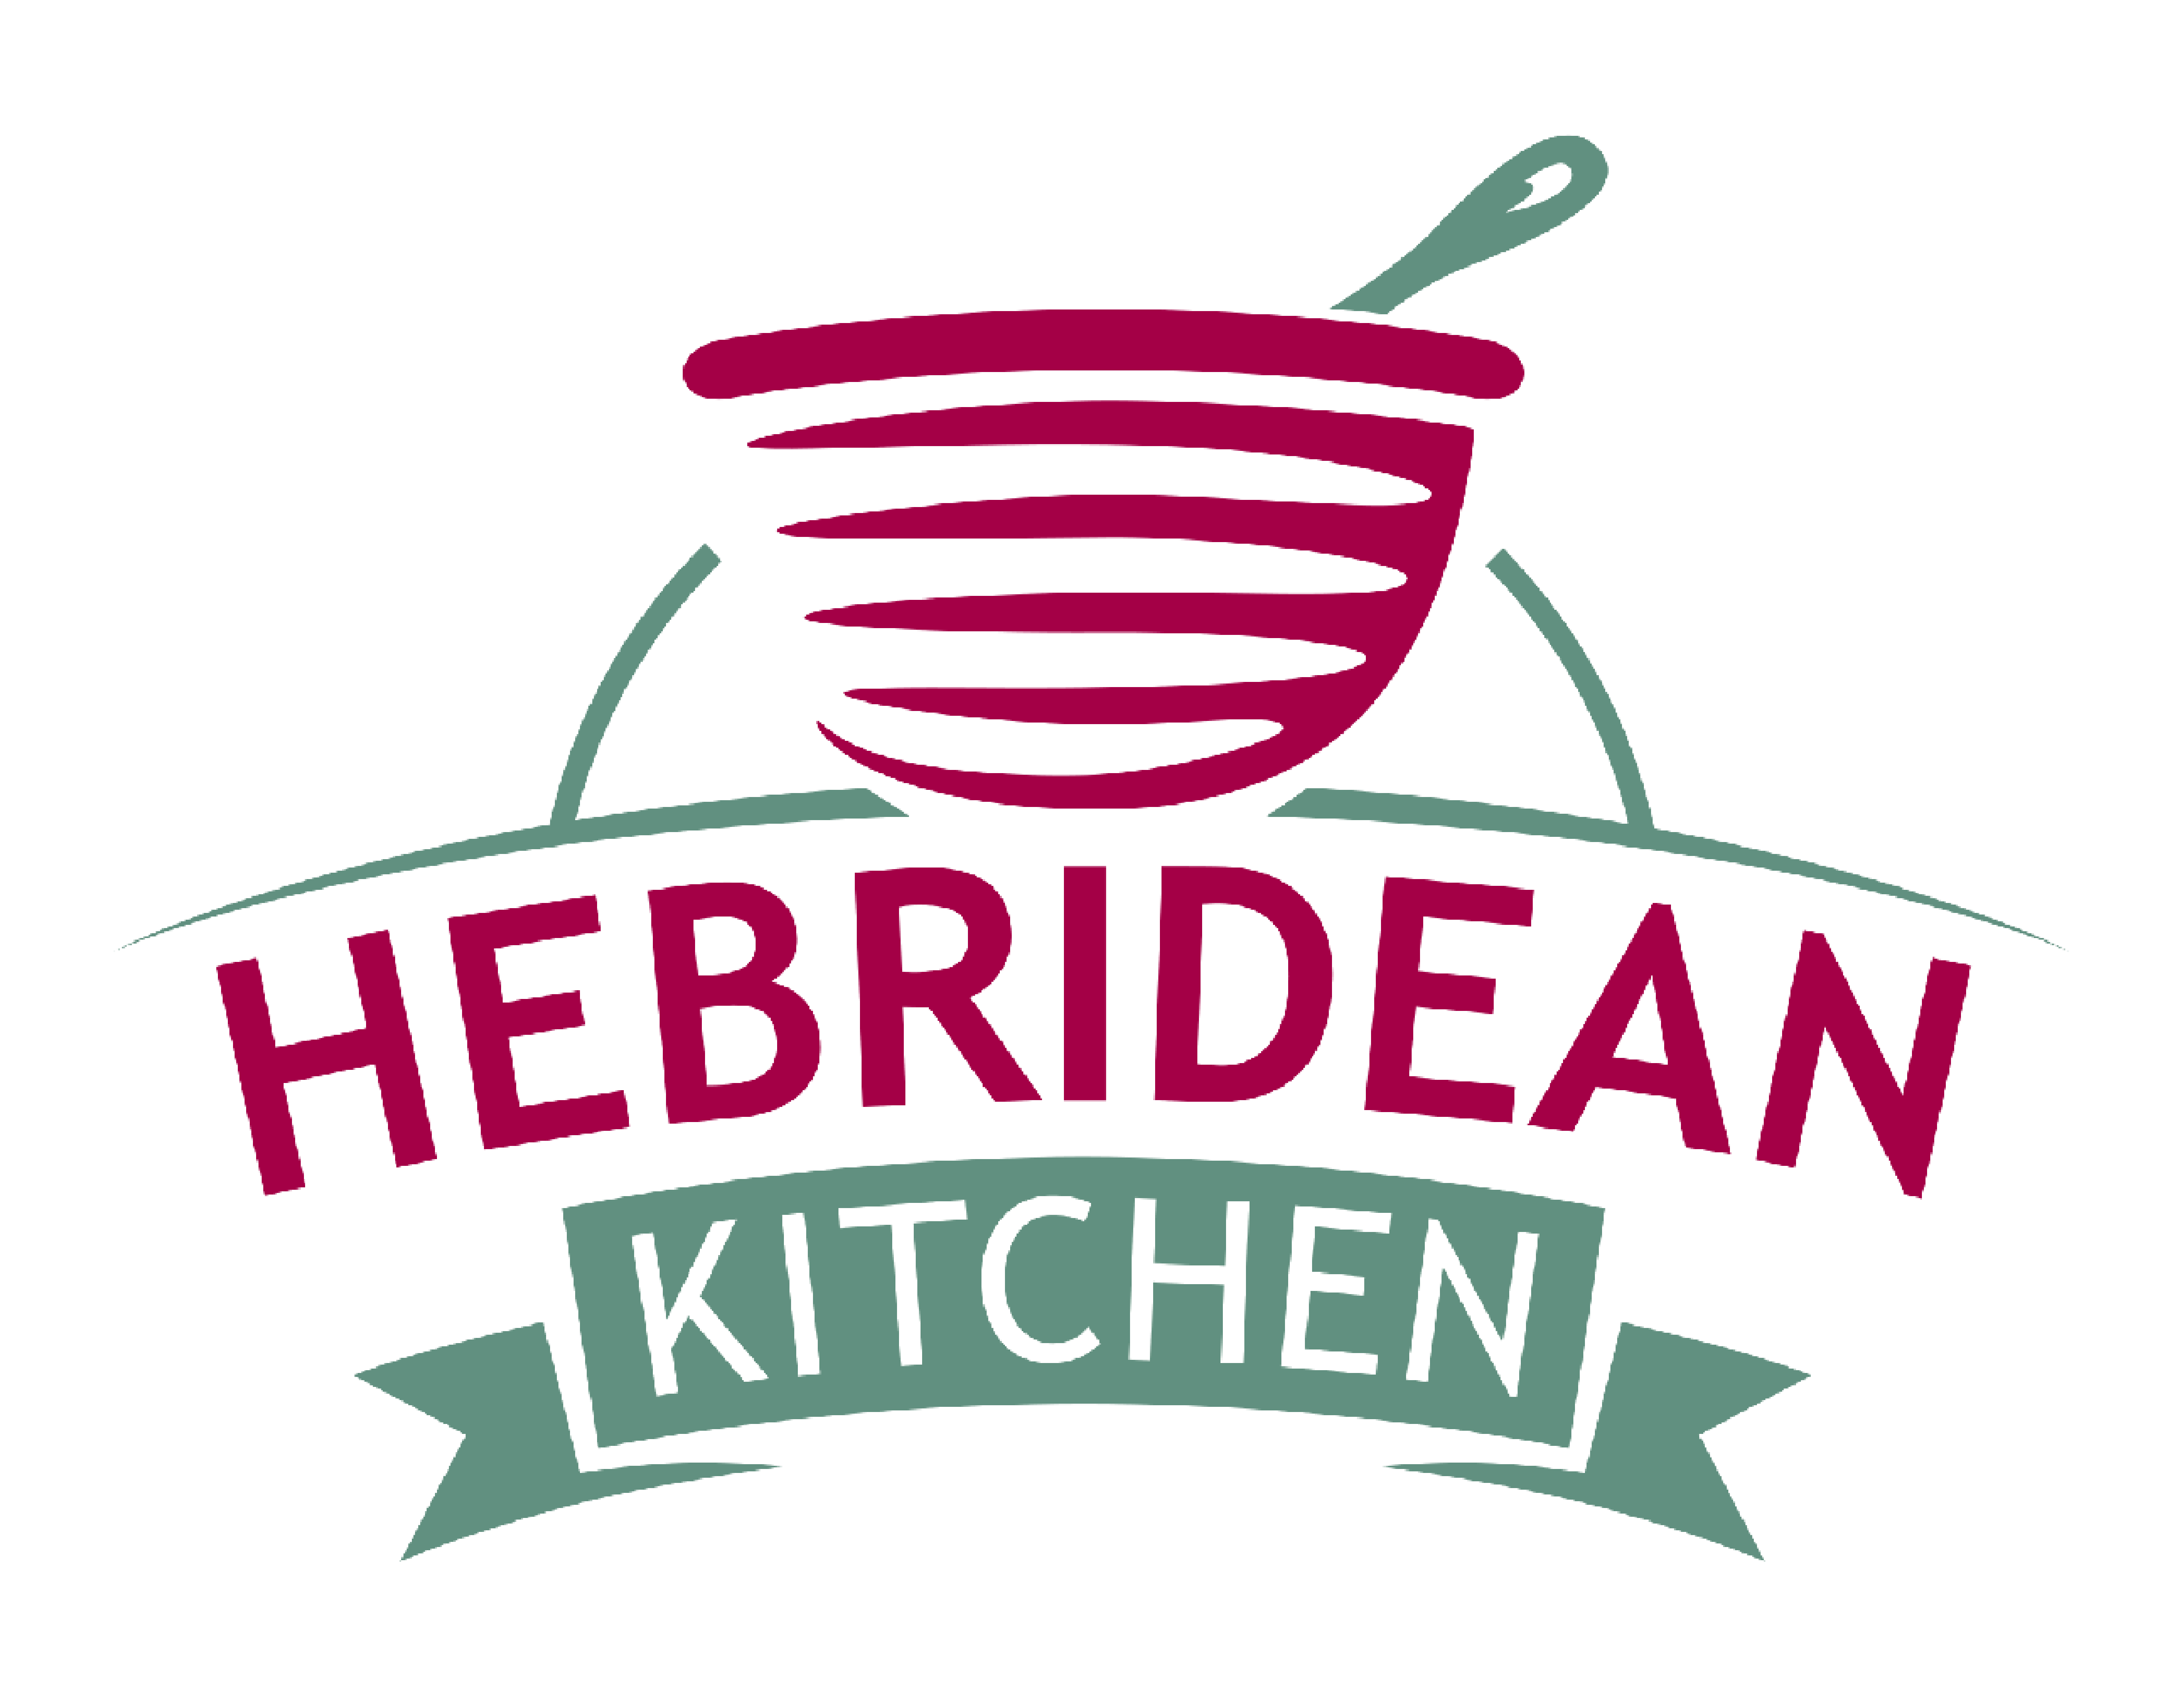 Hebridean Kitchen